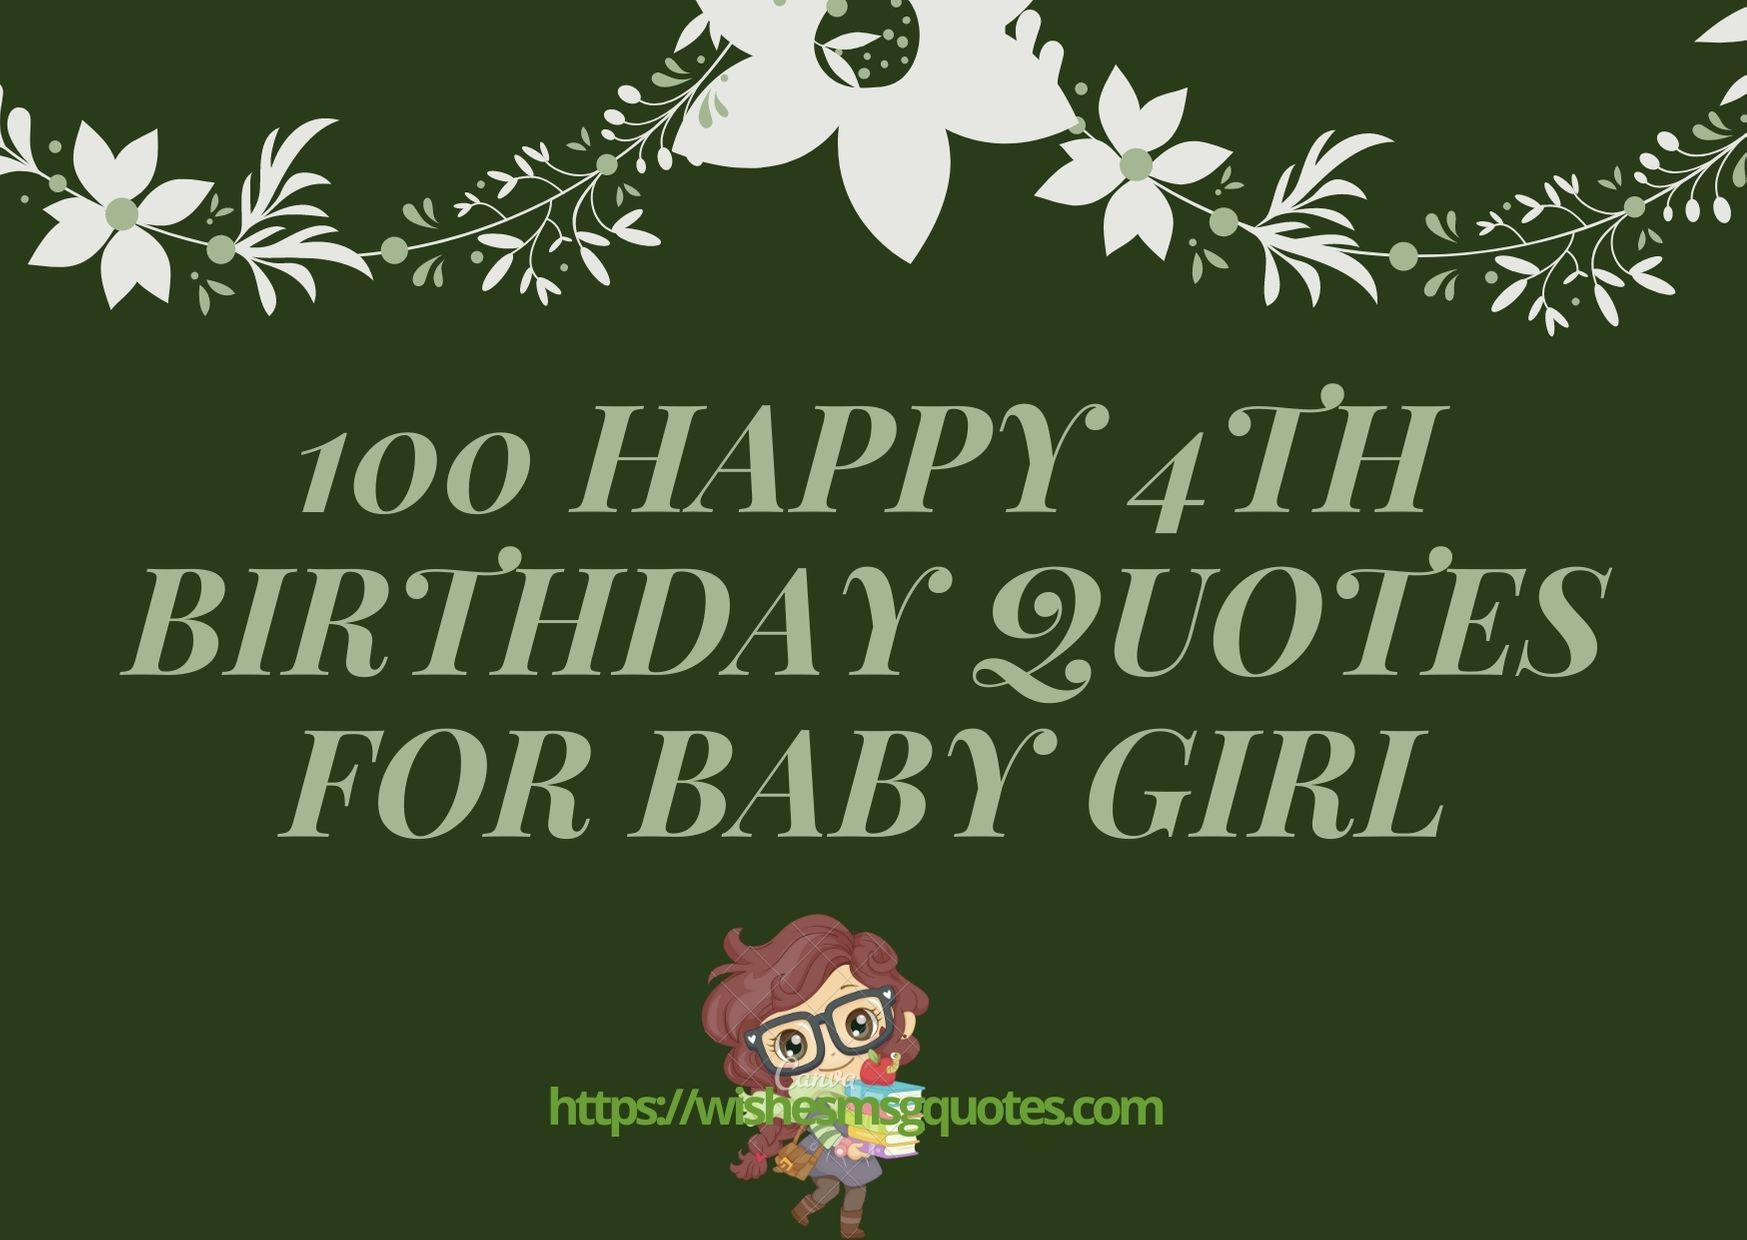 100 Happy 4th Birthday Quotes For Baby Girl